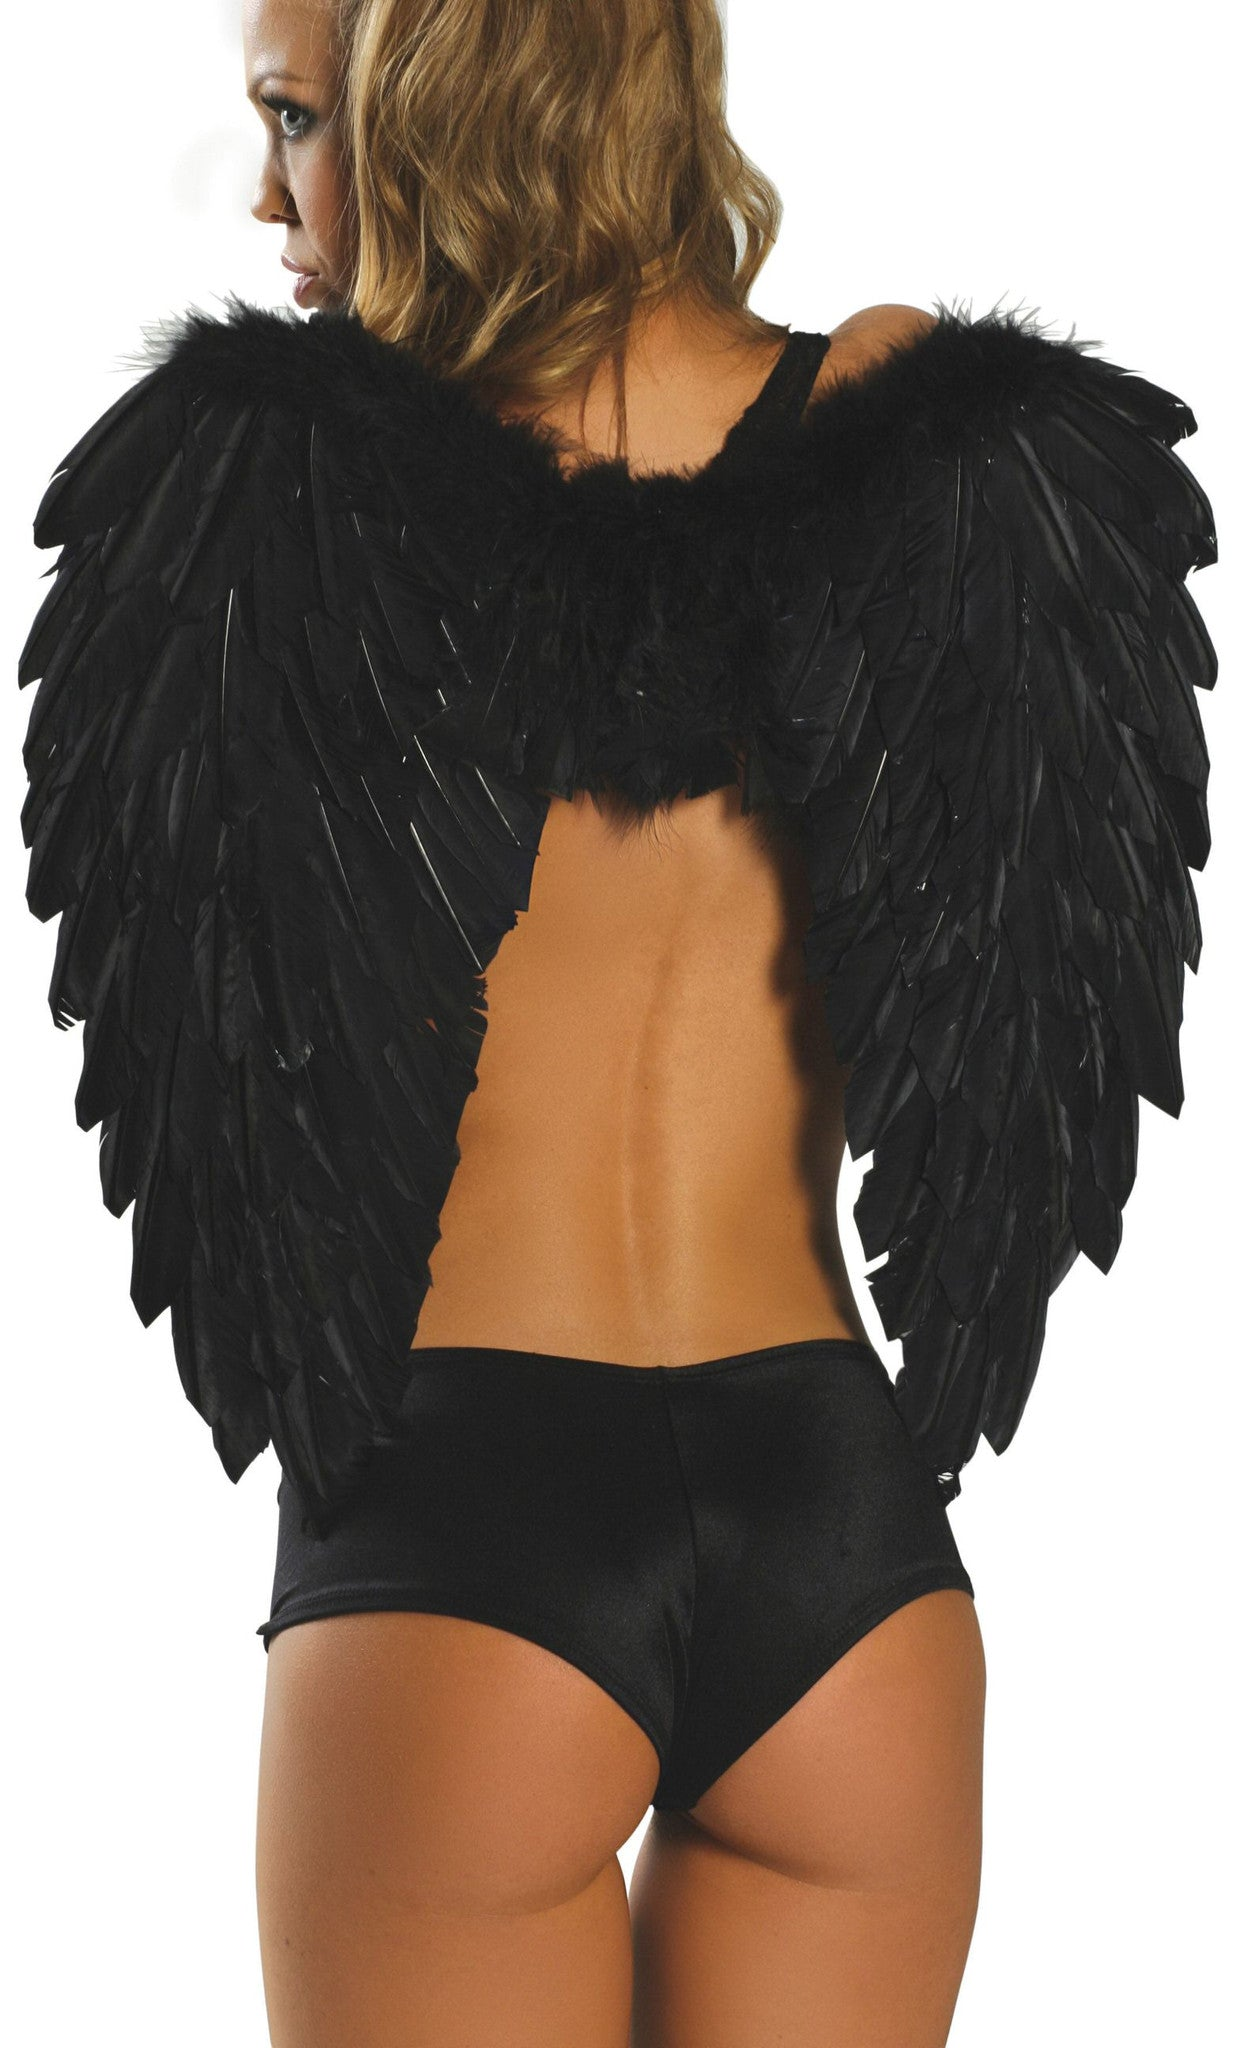 1361 - Feathered Wings ${description} | Roma Costume and Roma Confidential wholesale manufacturer of Women Apparel bulk world wide wholesale and world wide drop ship services for Adult Halloween Costumes, Sexy and Elegant Lingerie, Rave Clothing, Club wear, and Christmas Costumes. Accessories, Roma Costume, Inc., Roma Costume, Roma Confidential, Wholesale clothing, drop ship, drop ship service, Wholesale Lingerie, Wholesale Adult Halloween Costumes, Rave Clothing, EDM Clothing, Festival Wear, Christmas Costumes, Clubwear, Club wear.